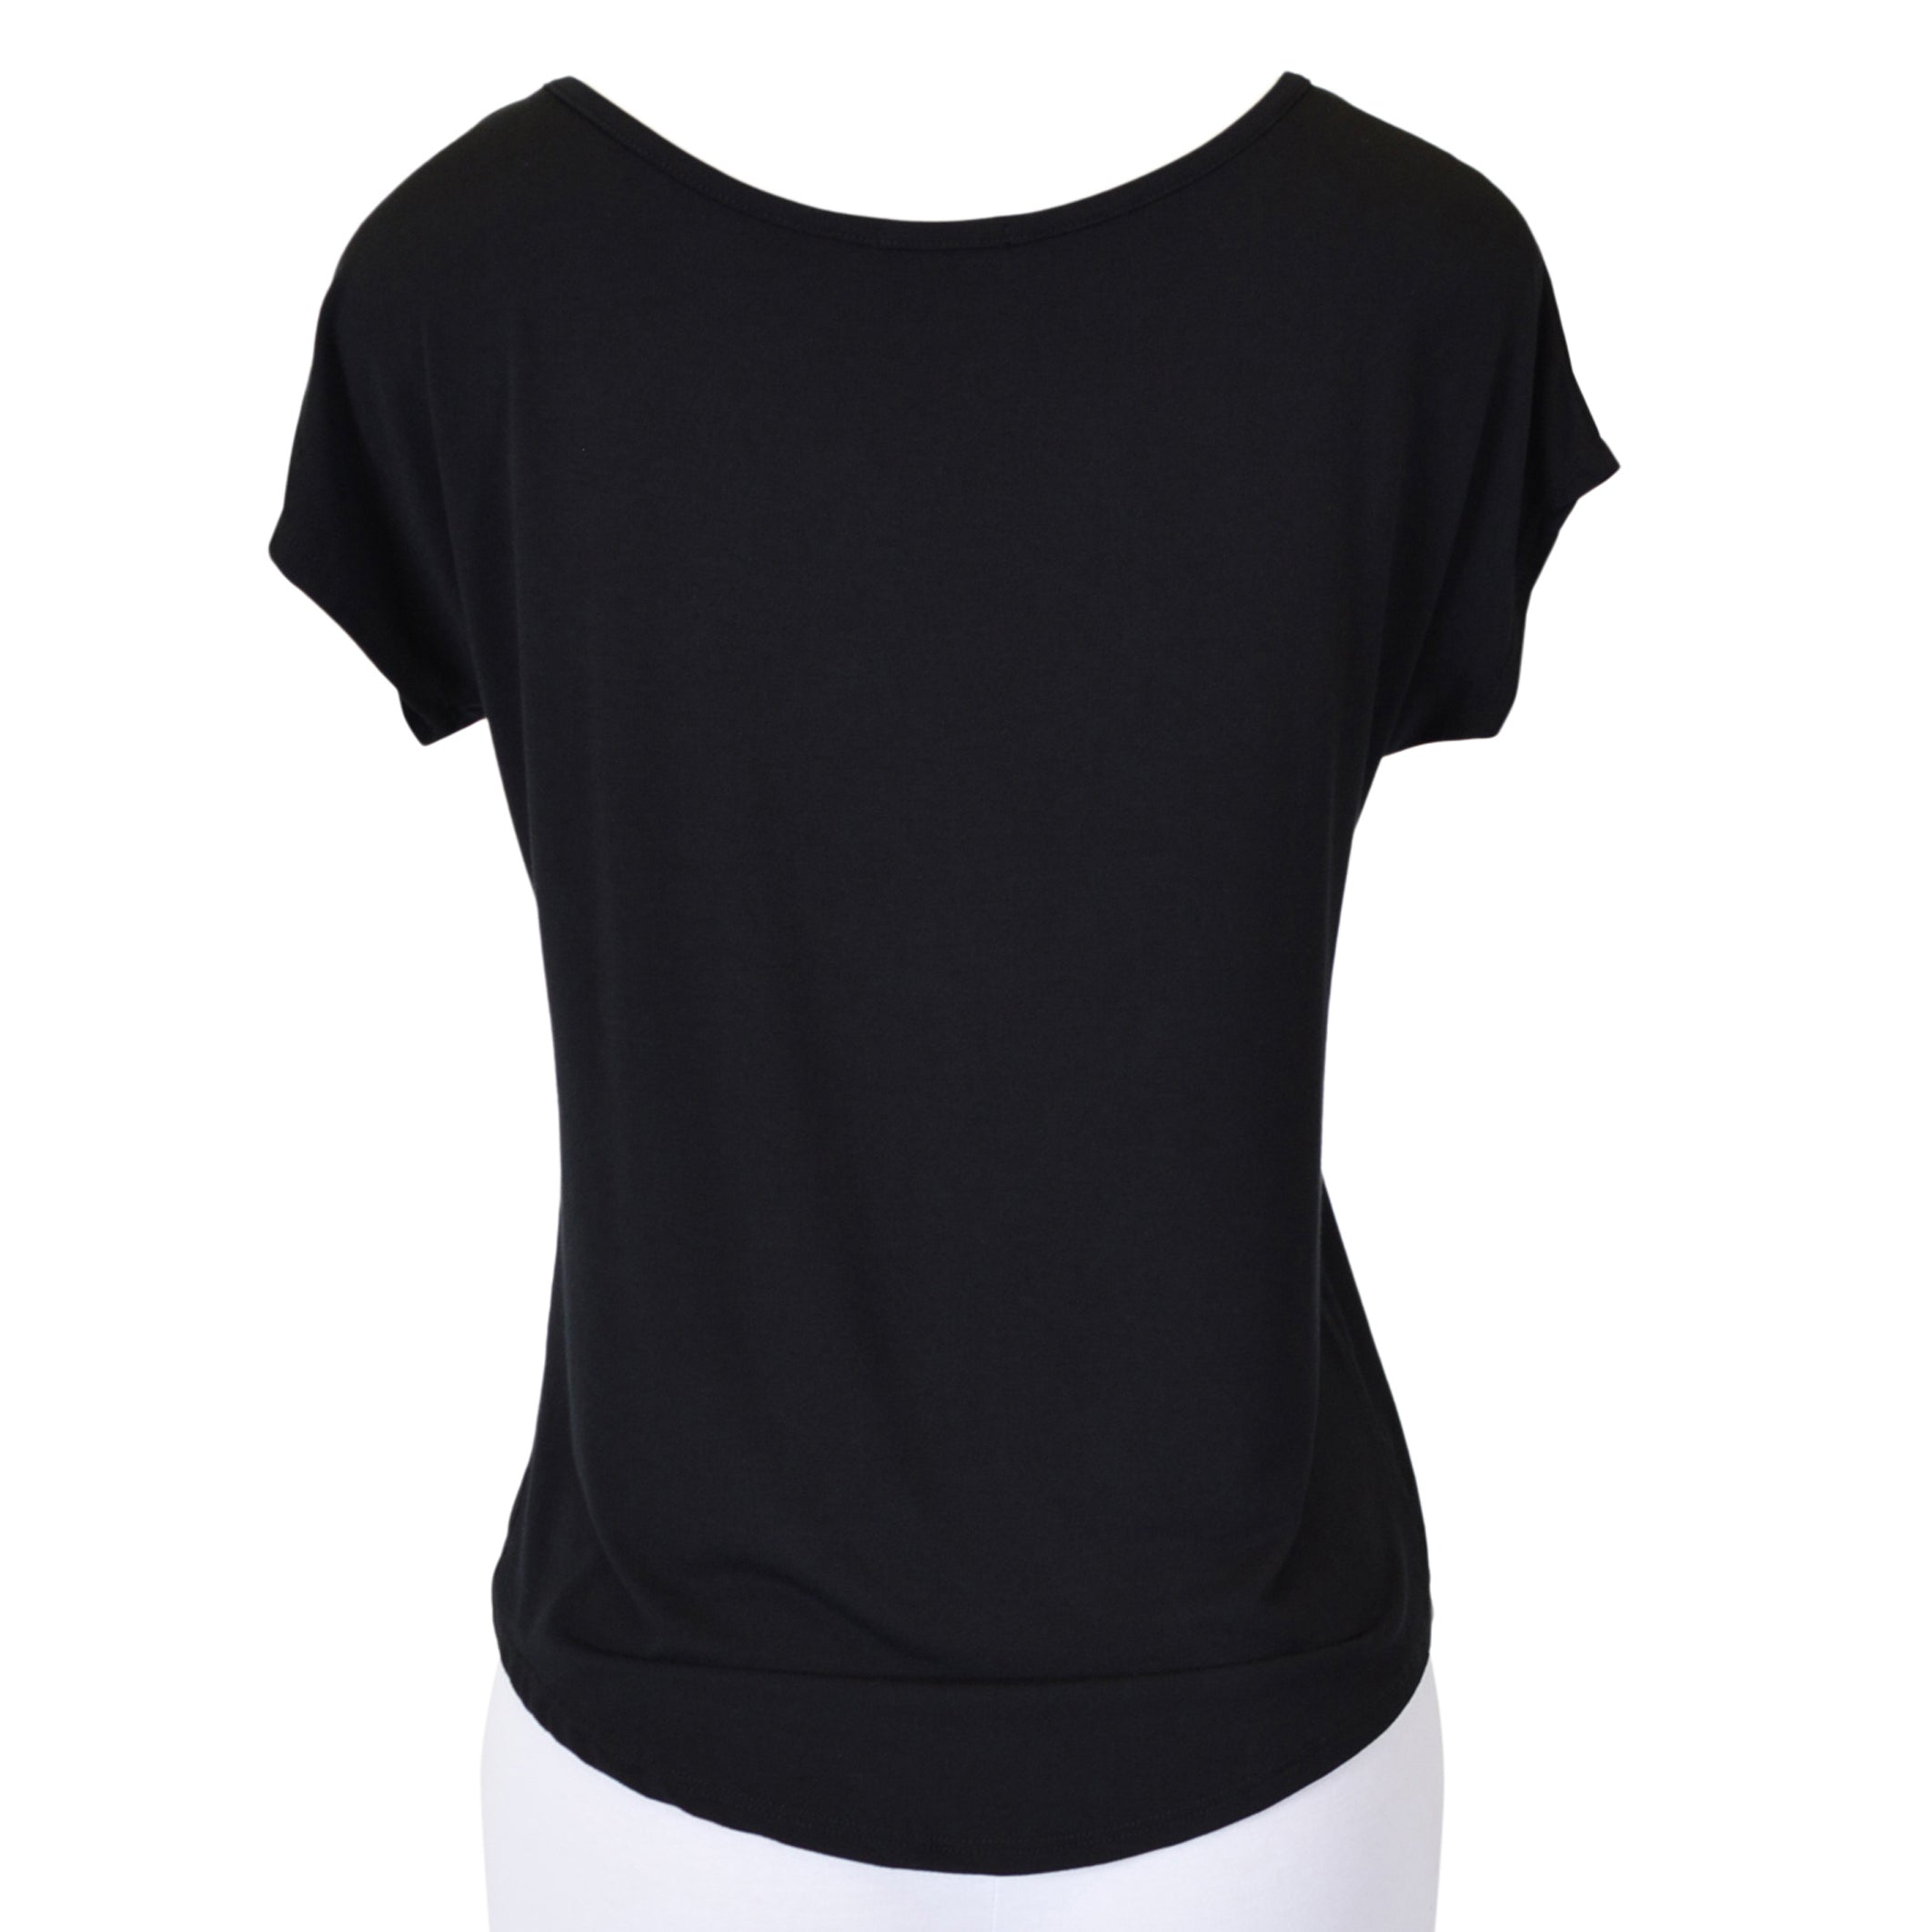 "Women's High-Low Boatneck ""Cheer Mom"" Modal Tee"